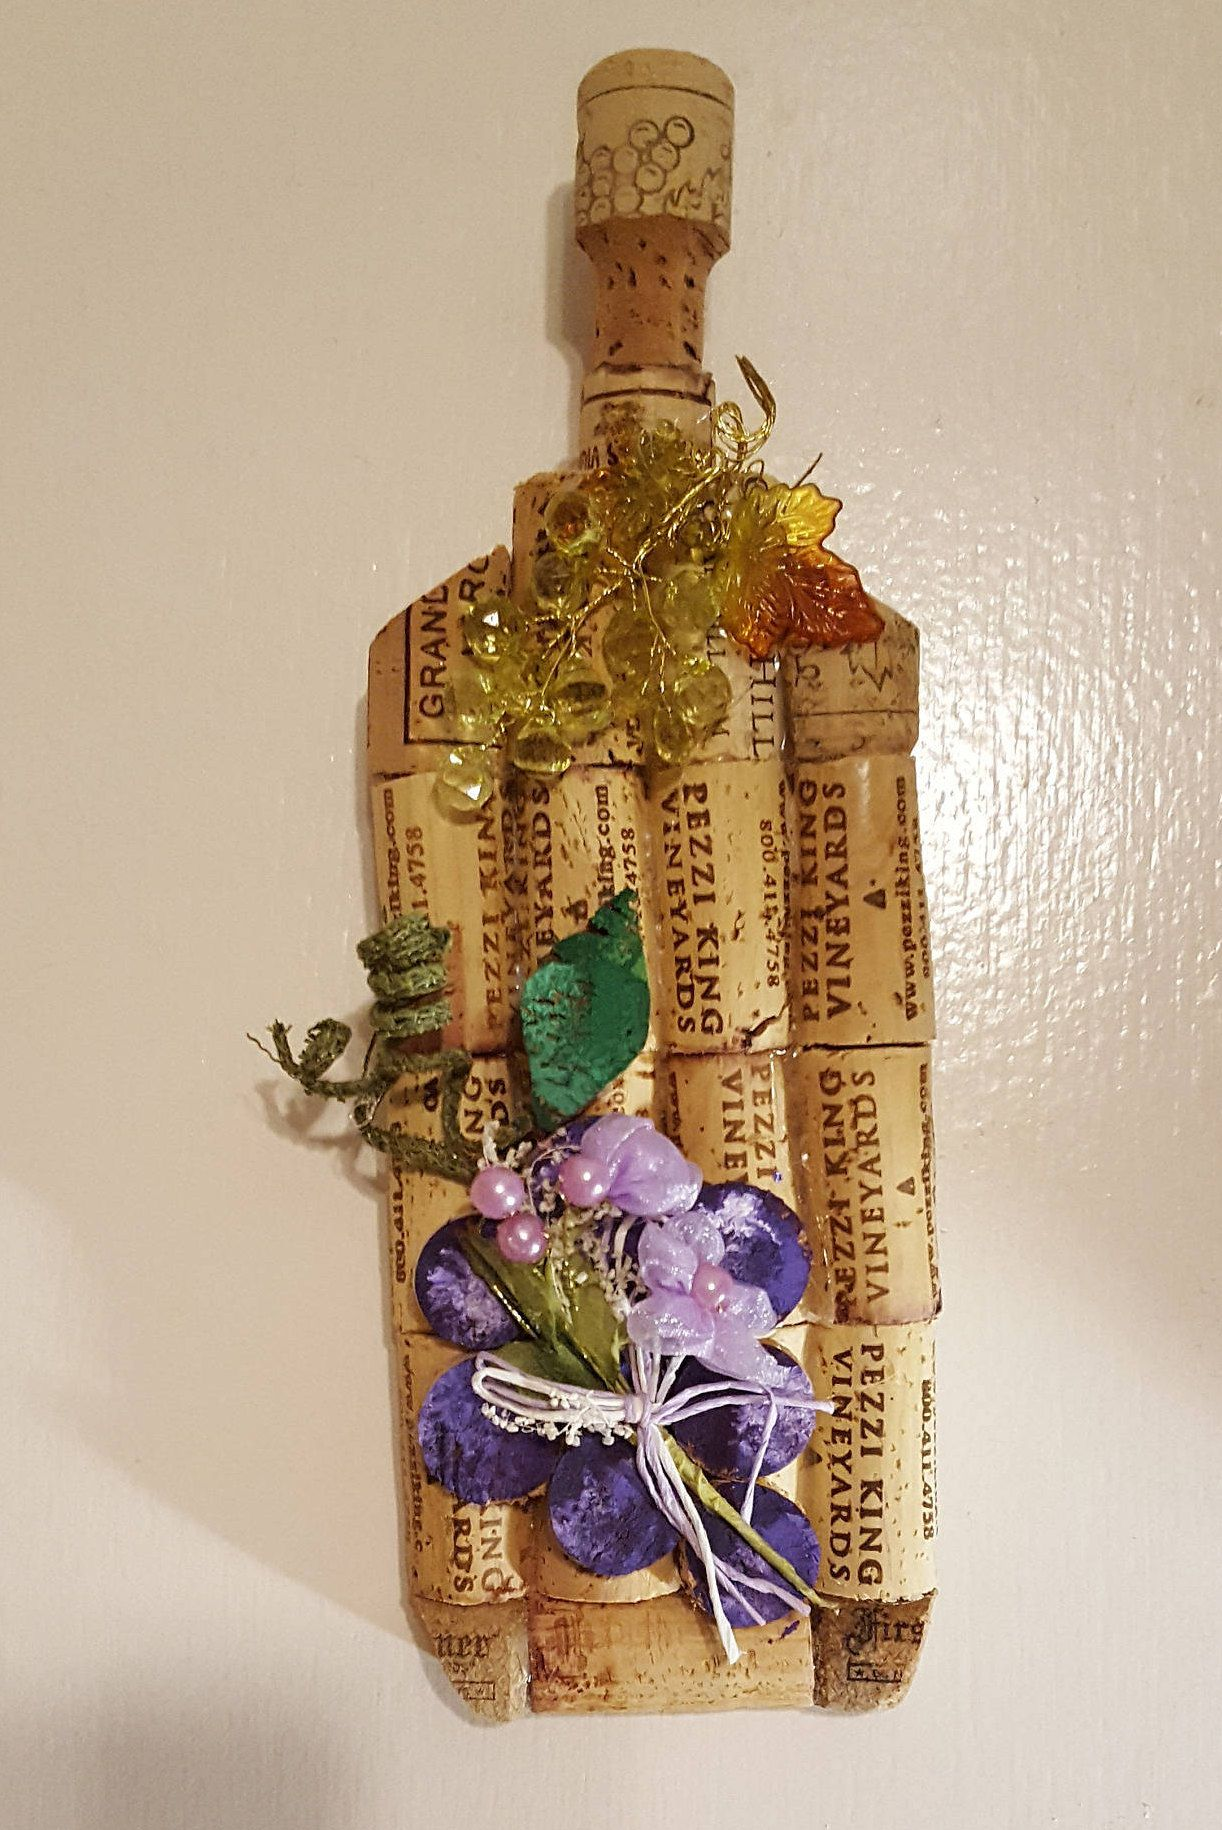 Cork wine bottlerustic cork wine bottle country kitchen wall decor